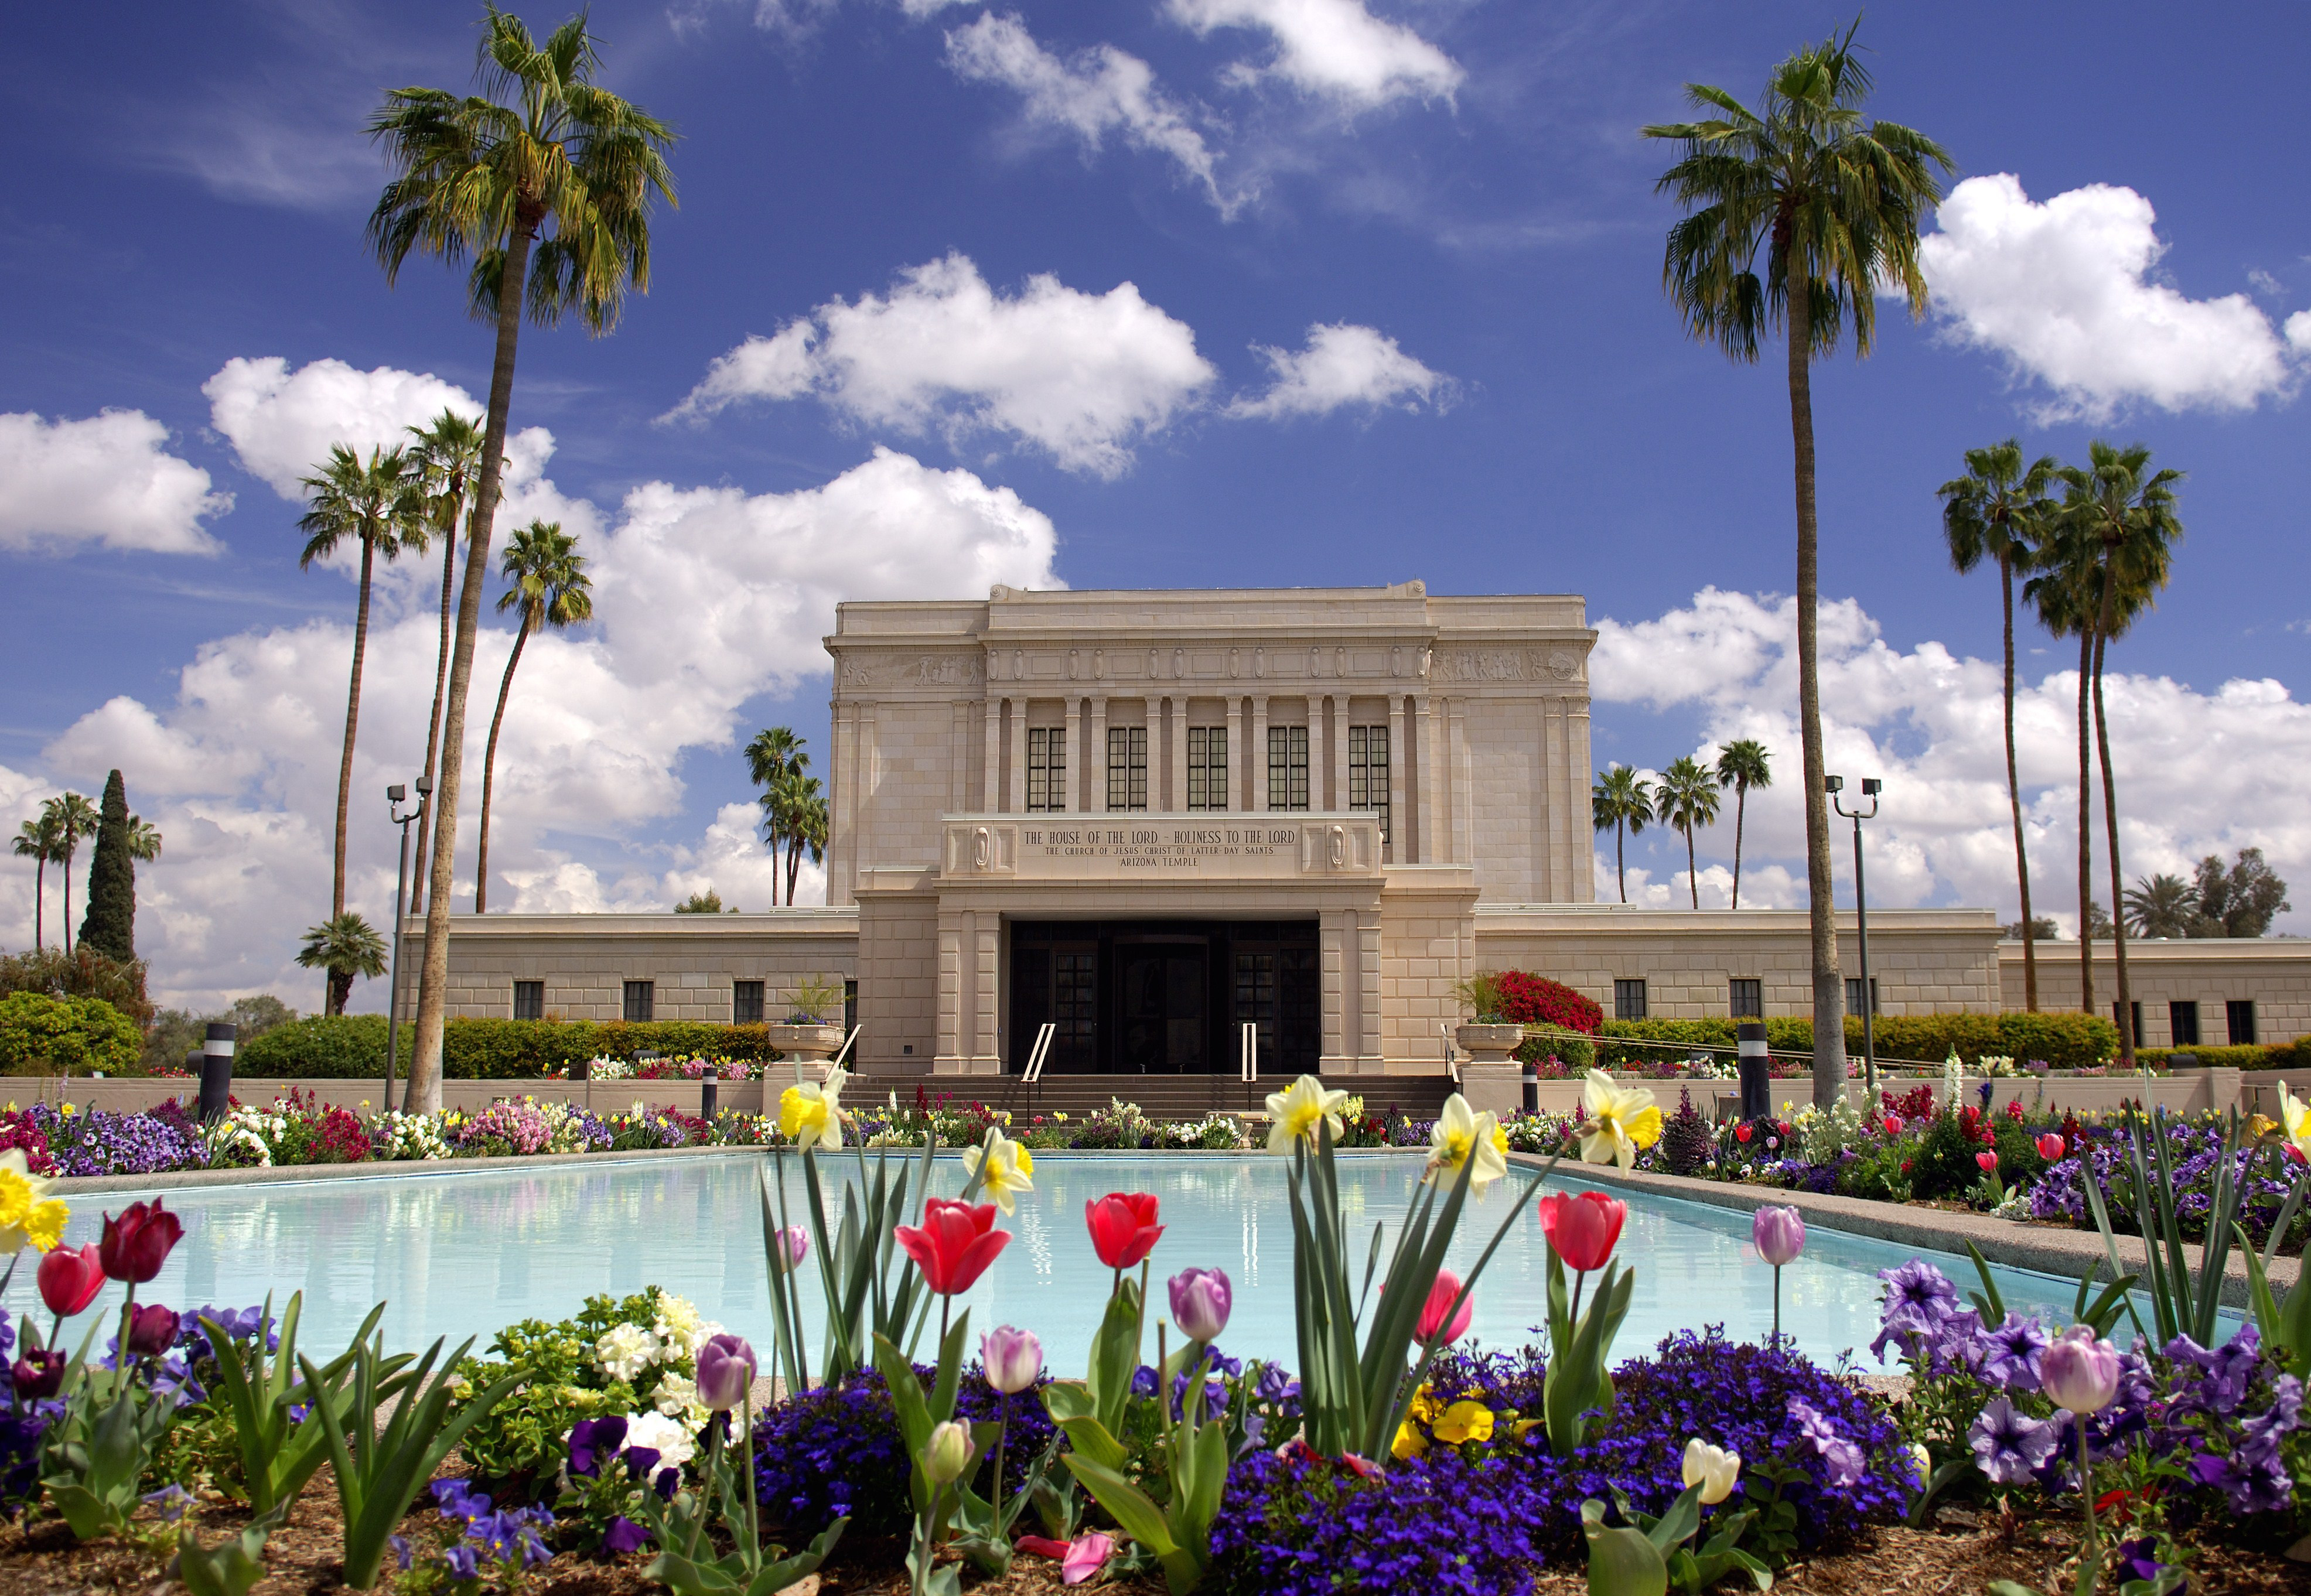 The Mesa Arizona Temple, which was first dedicated in 1927, and was rededicated after extensive remodeling in 1975, is scheduled for another closure for renovation beginning in May 2018. Photo courtesy of The Church of Jesus Christ of Latter-day Saints Media Room